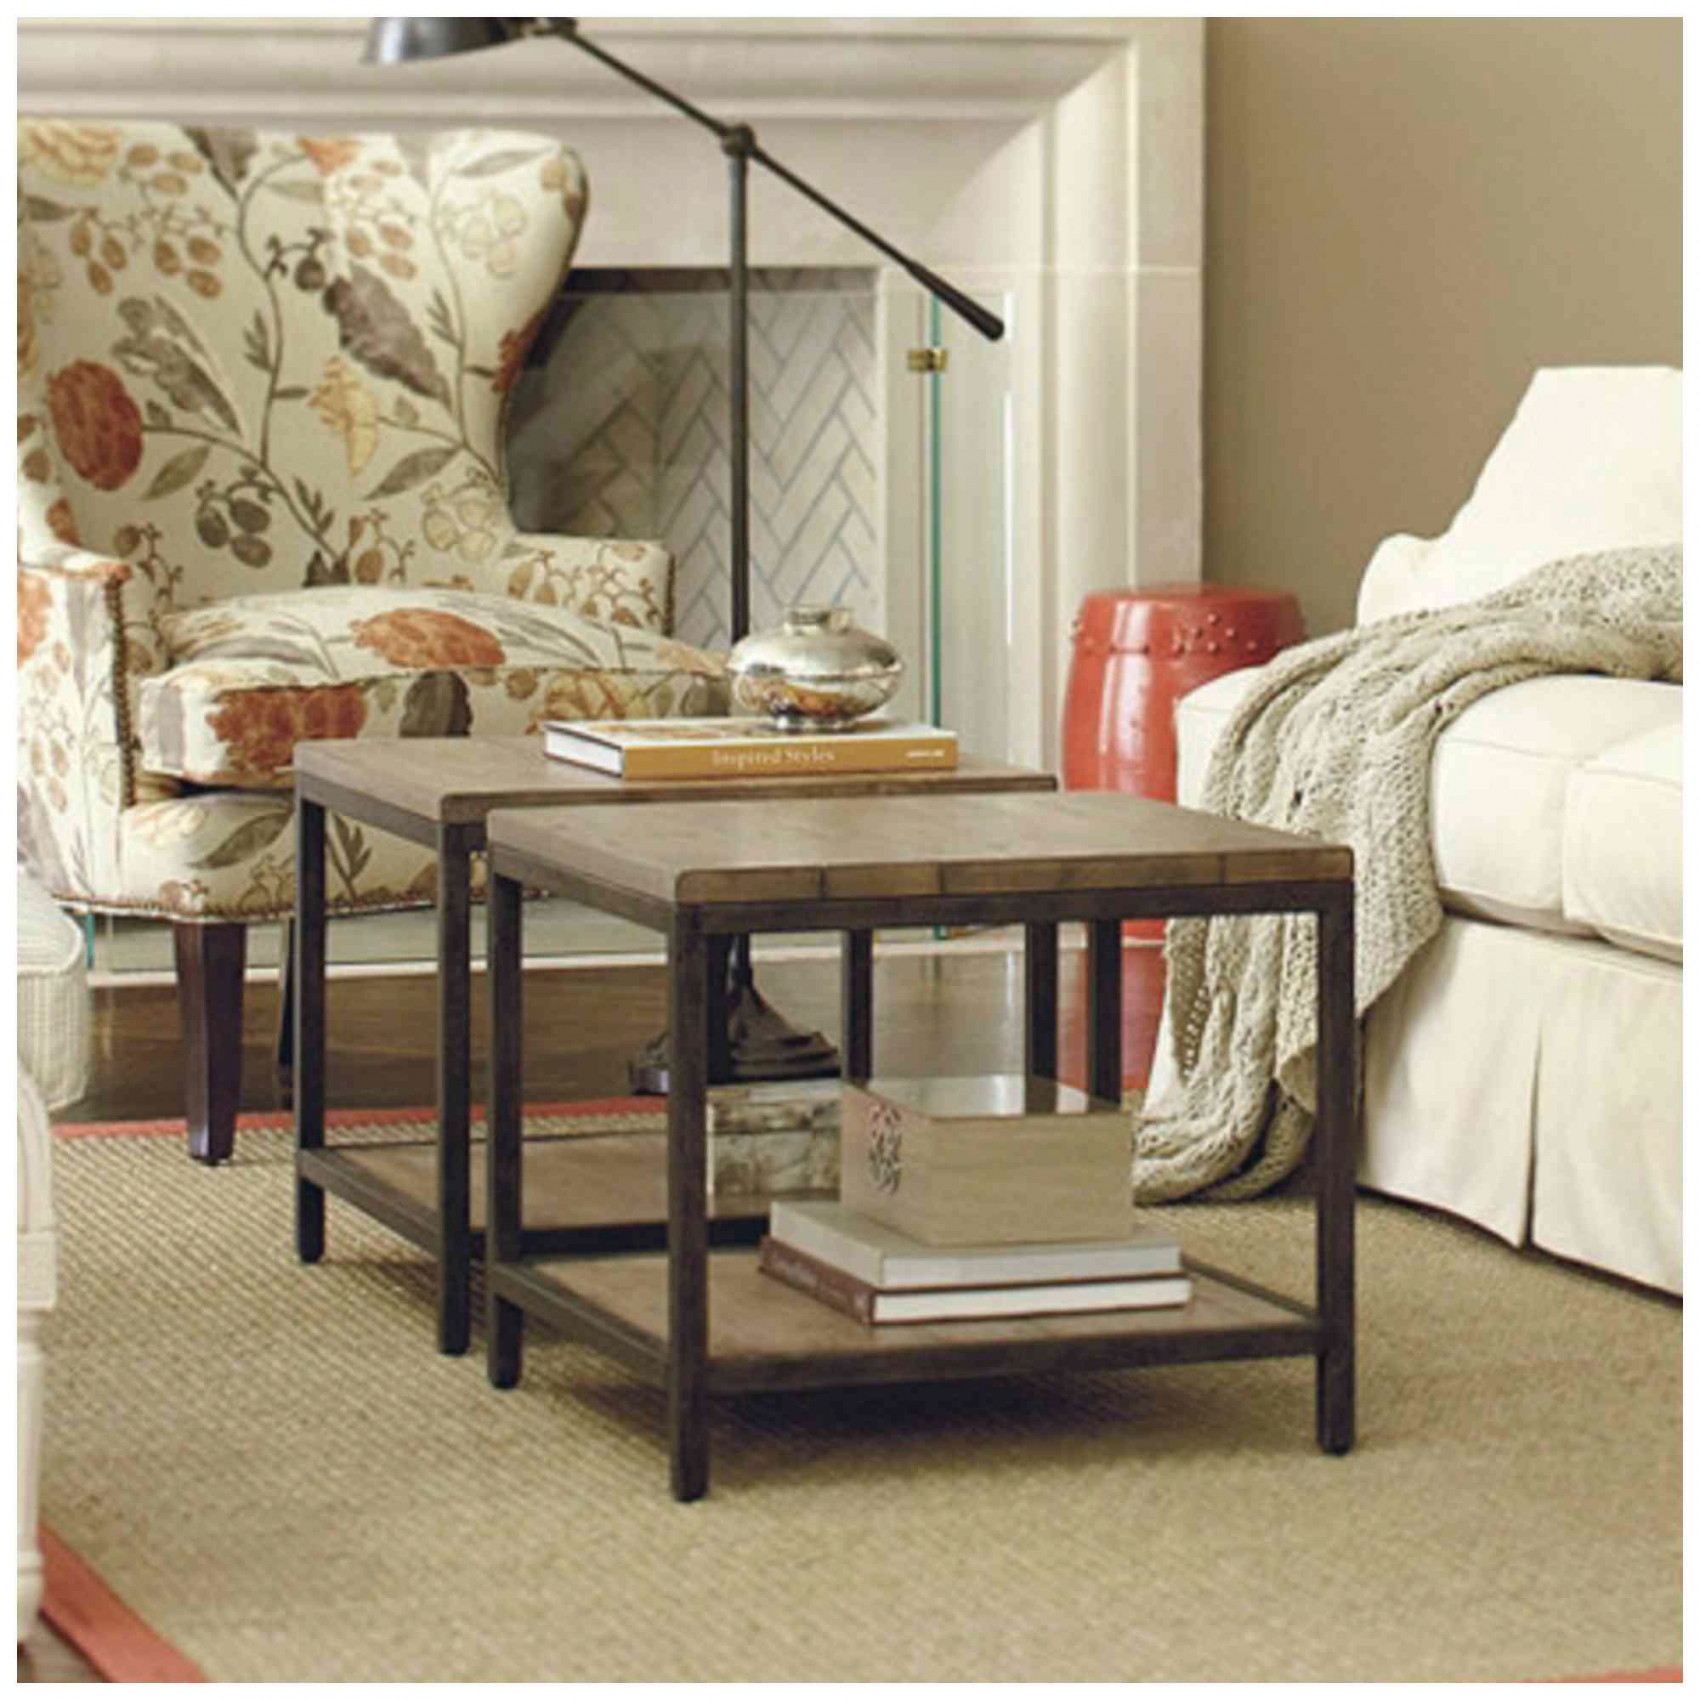 7 Coffee Table Alternatives For Small Living Rooms inside 9+ Awesome Inspiration For Small End Tables Living Room